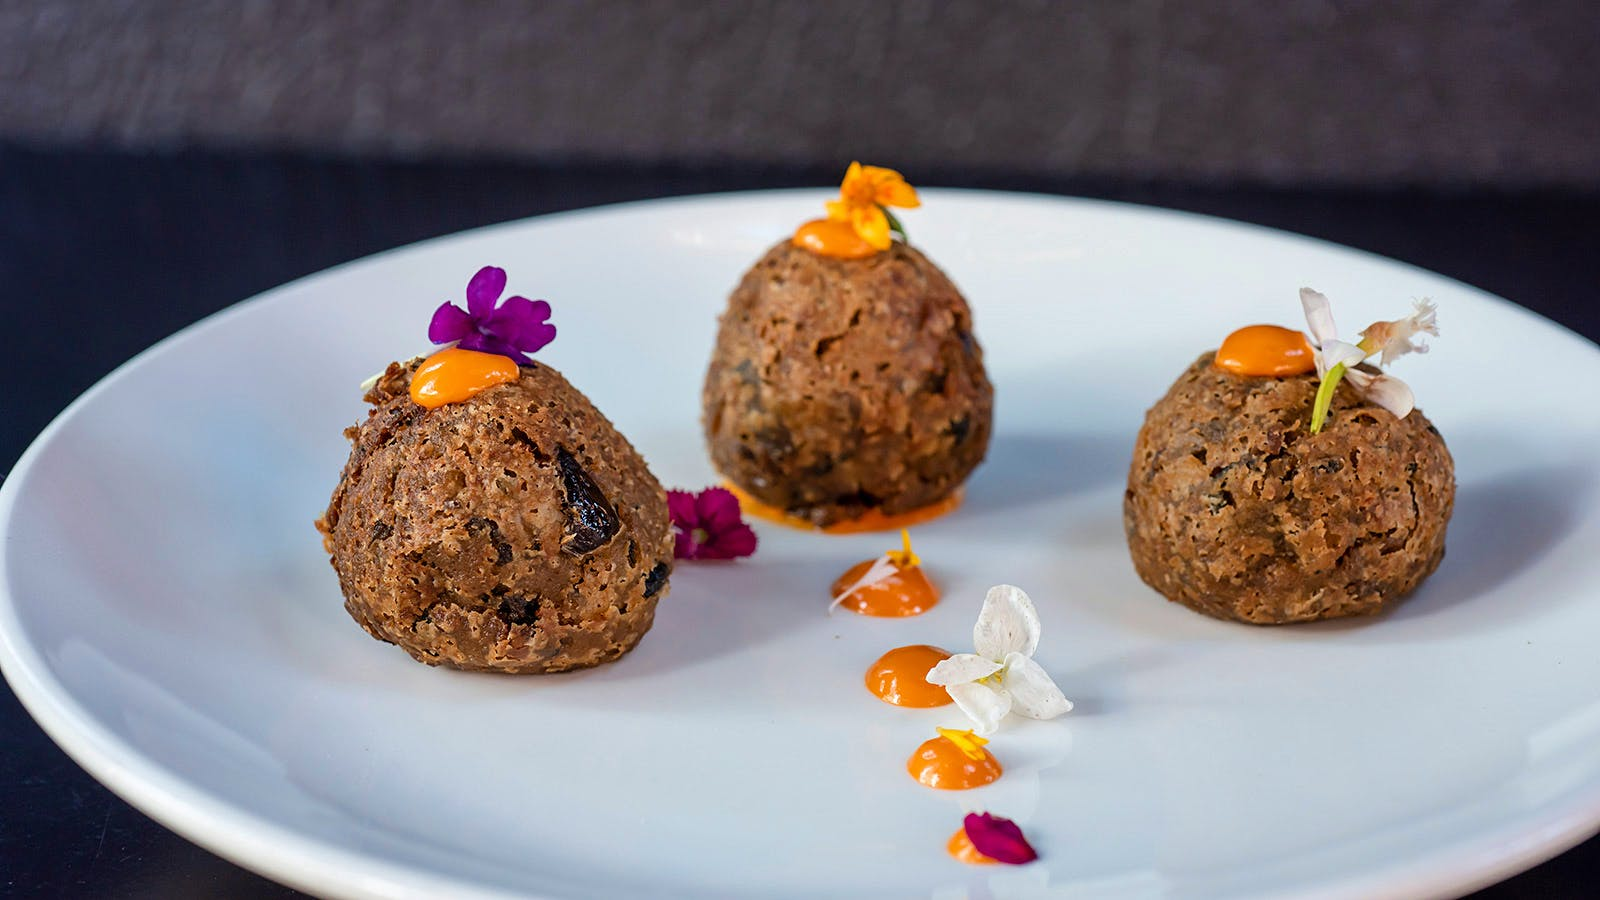 Autumn Meatless Meatballs with Red Pepper Sauce from Harlem's Vinatería